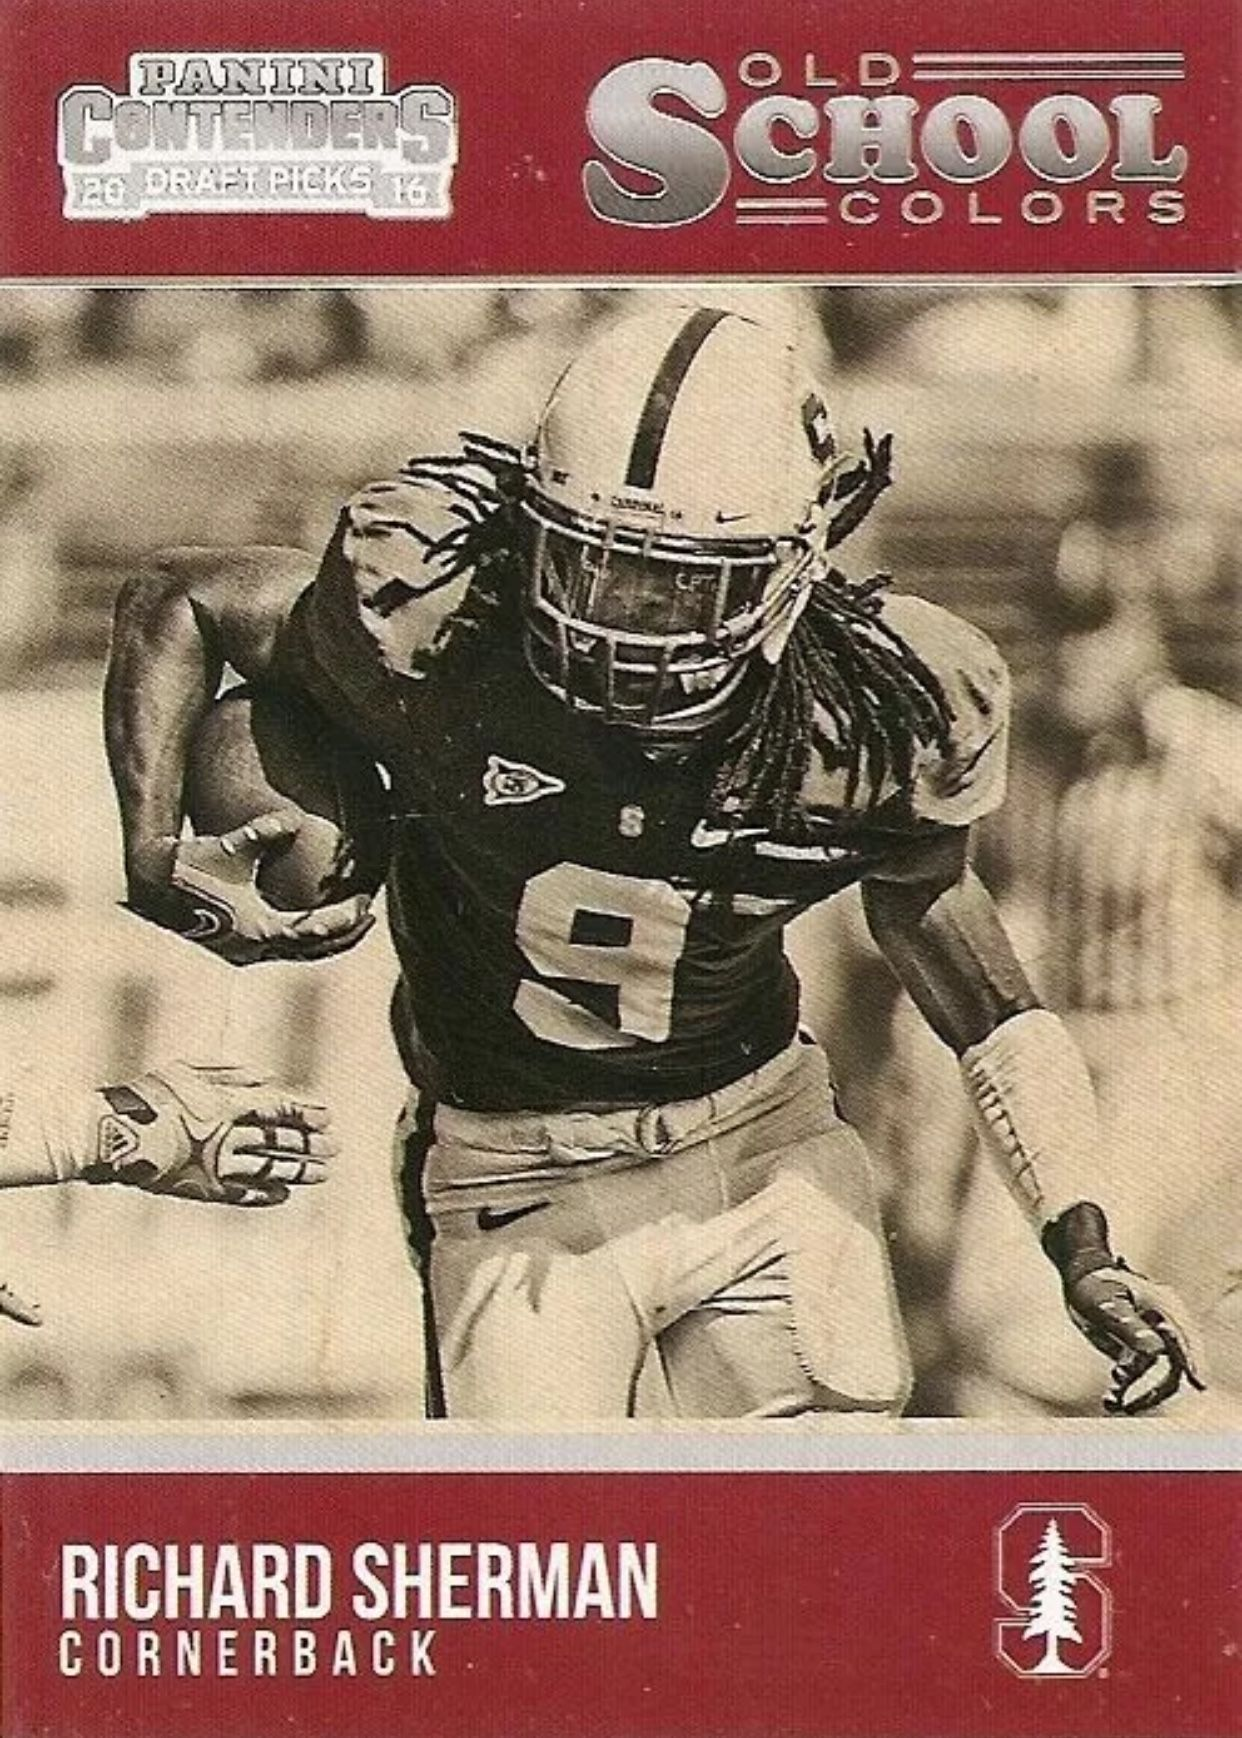 Richard Sherman from Dominguez High School to Stanford ...